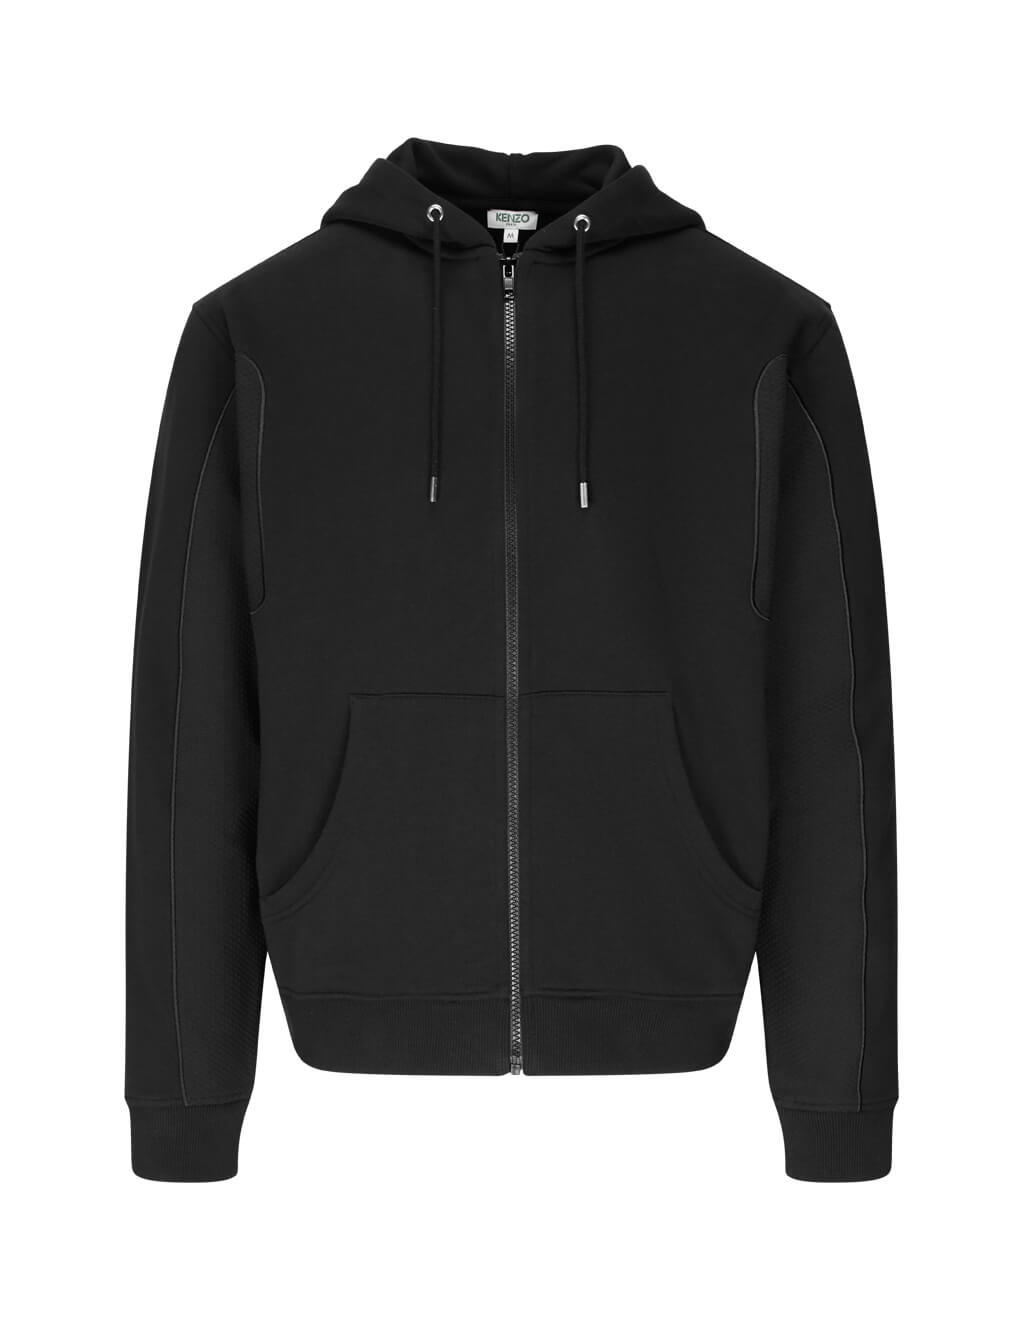 KENZO Men's Giulio Fashion Black Zip-Up Sweatshirt FA55BL7414MC.99